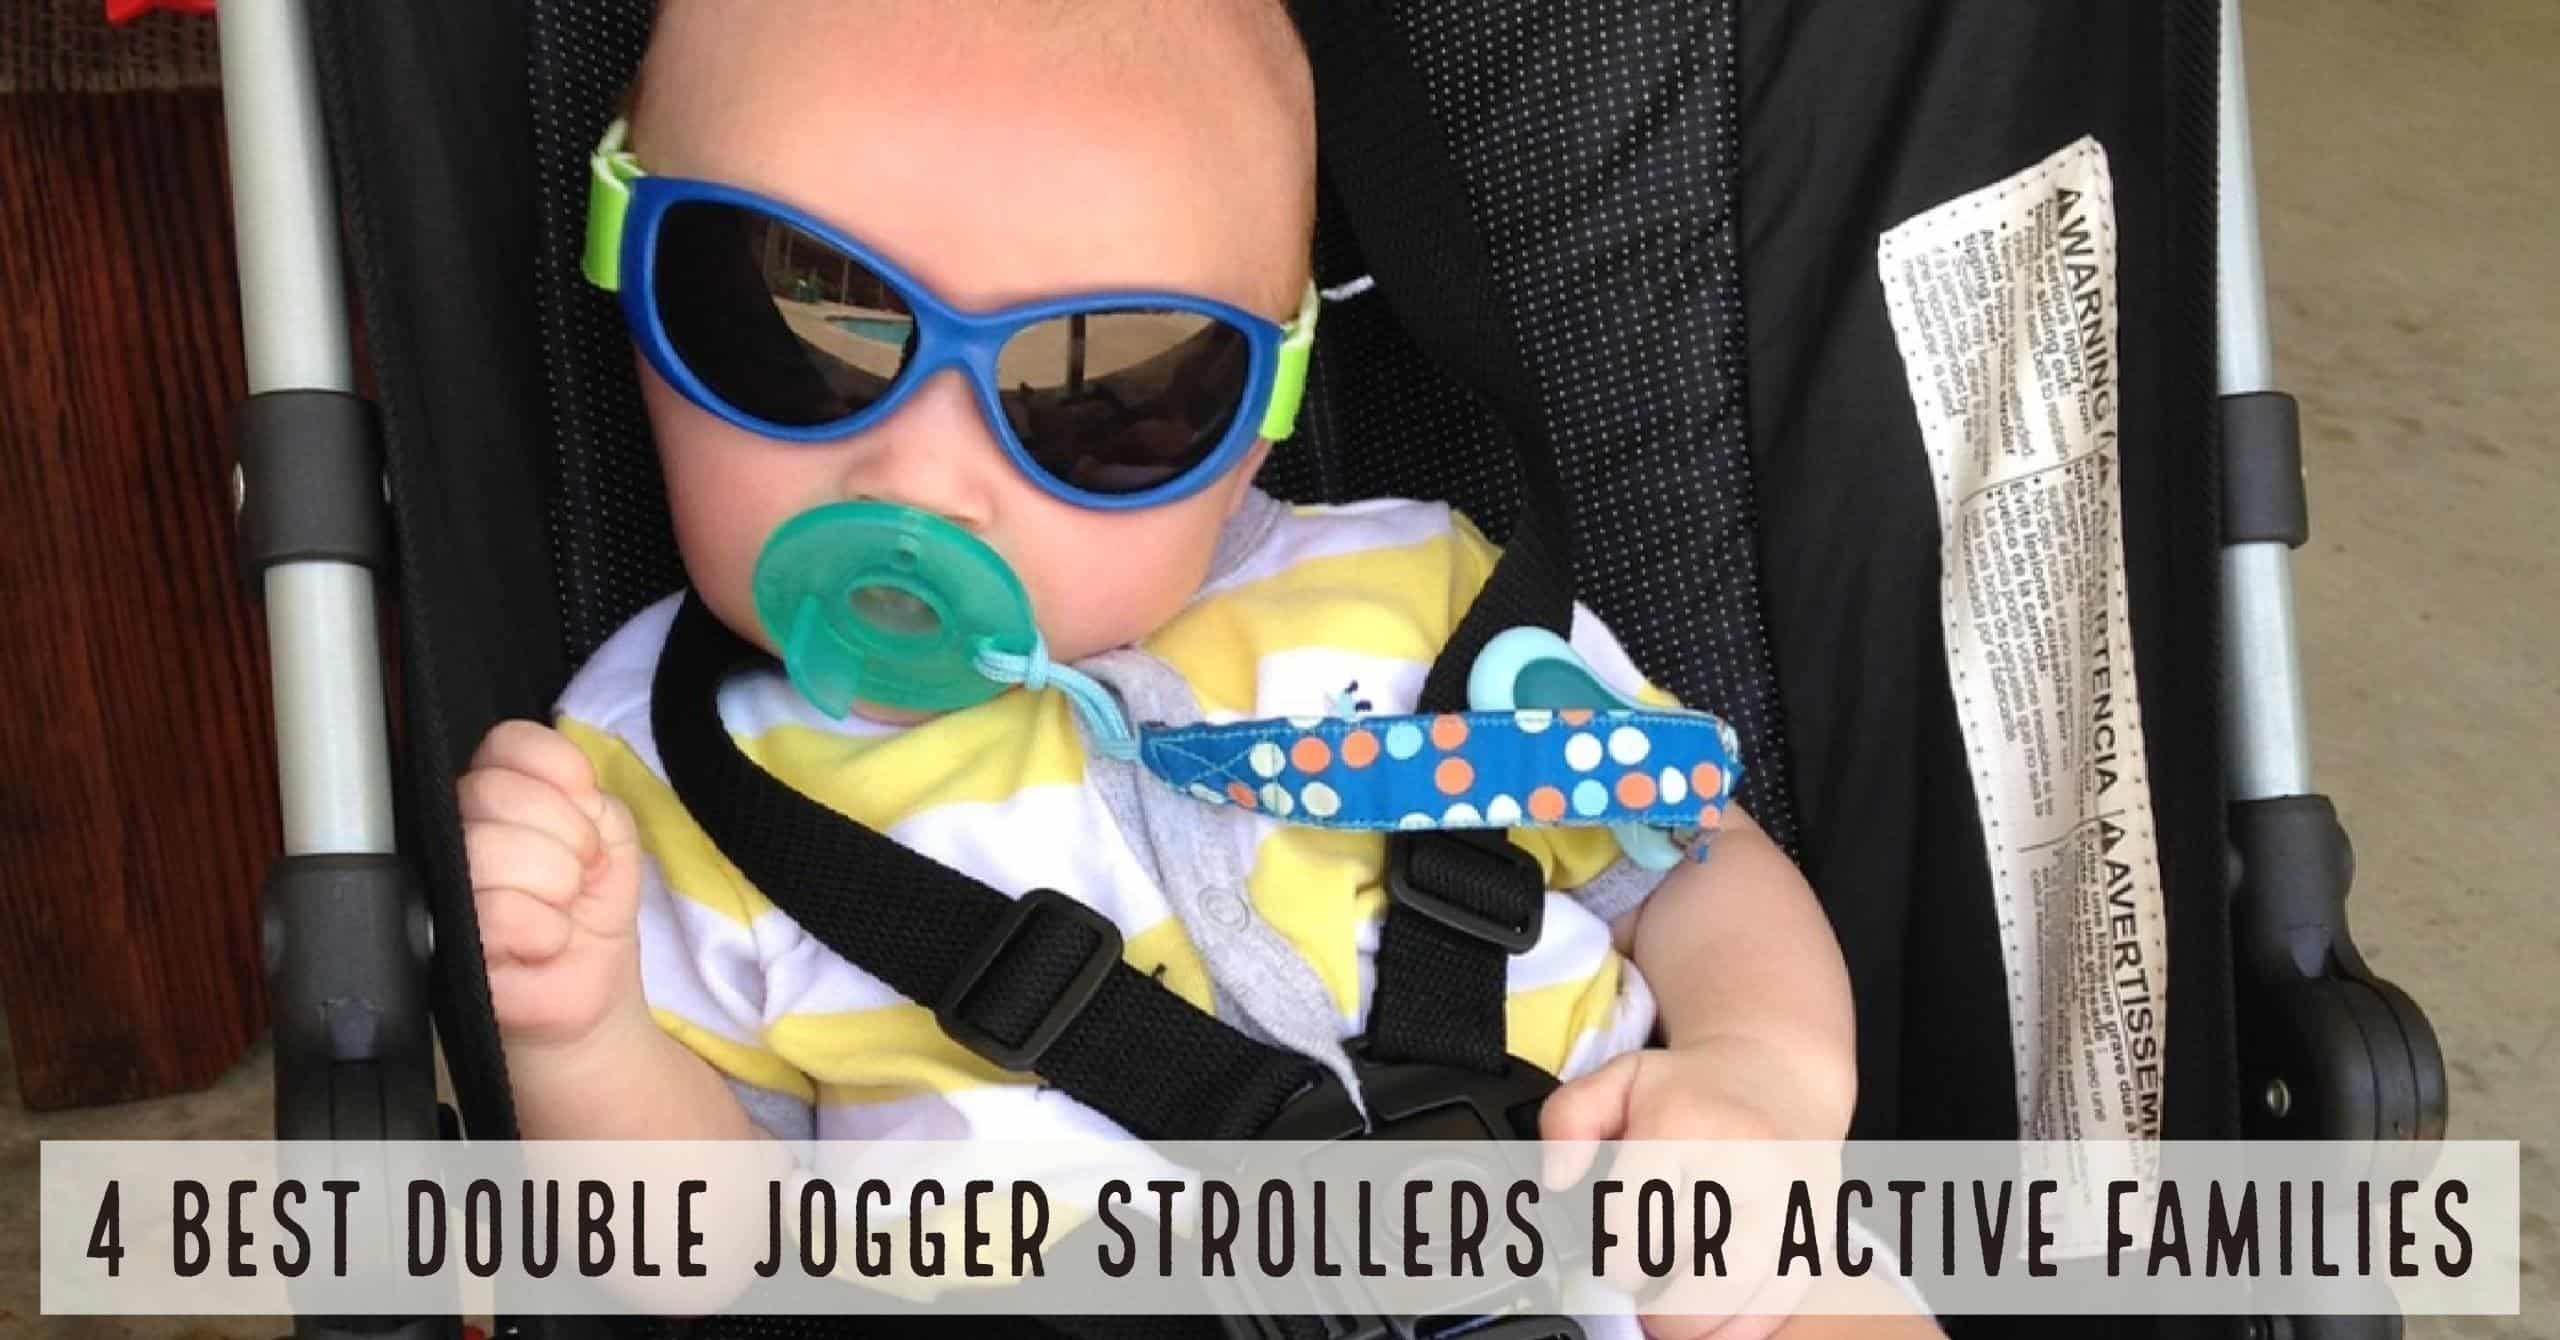 The 4 Best Double Jogger Strollers for active families